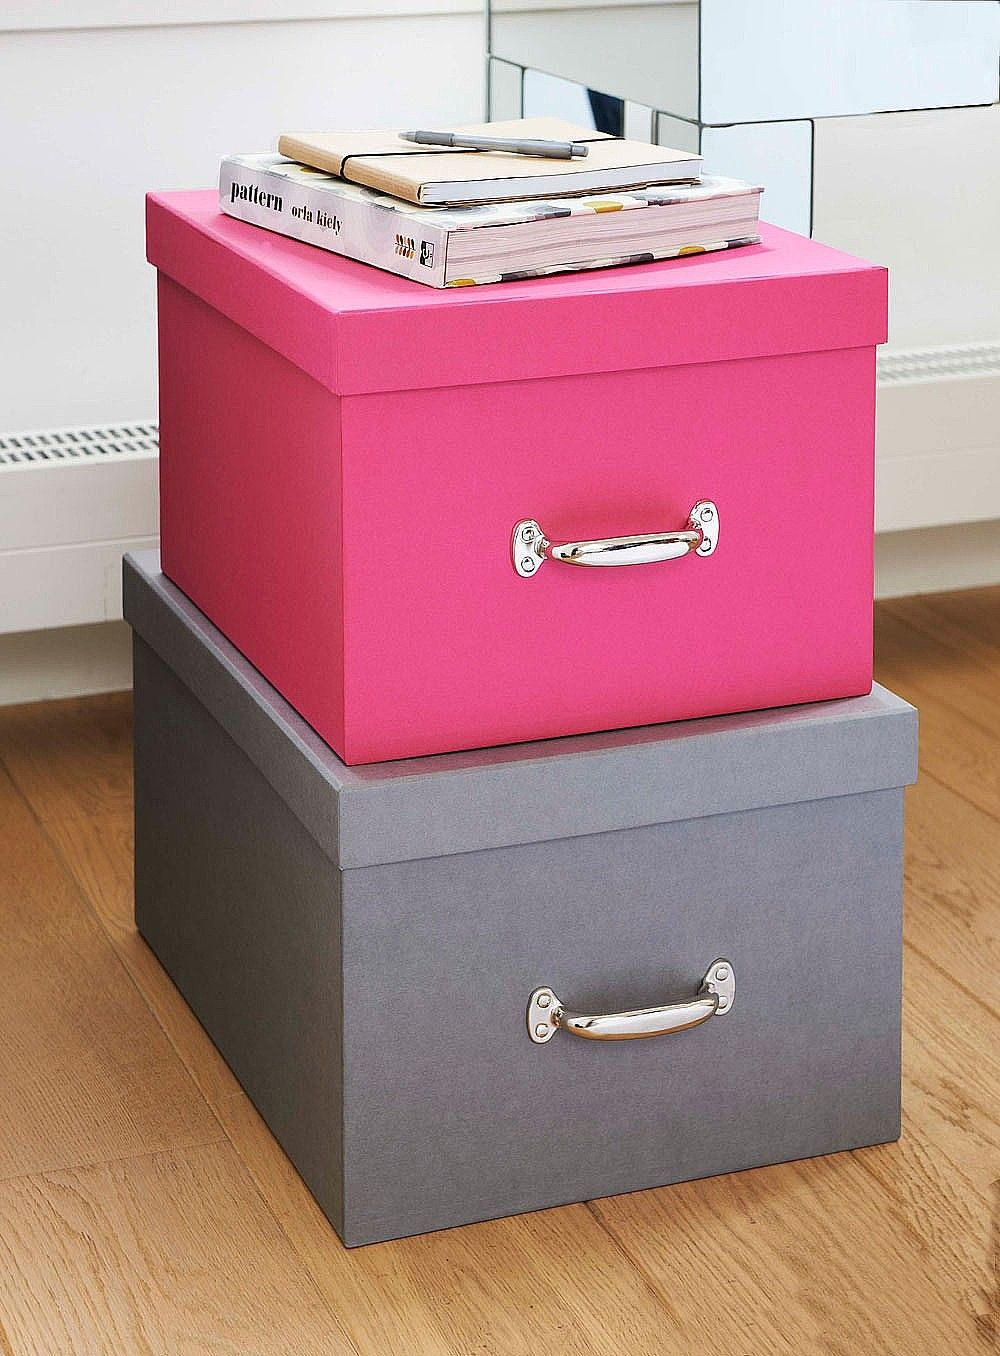 Get Your Storage Sorted With These Large Volume Storage Boxes Perfect For  The Bedroom, Office Or Living Room. From Bigso Box Of Sweden.